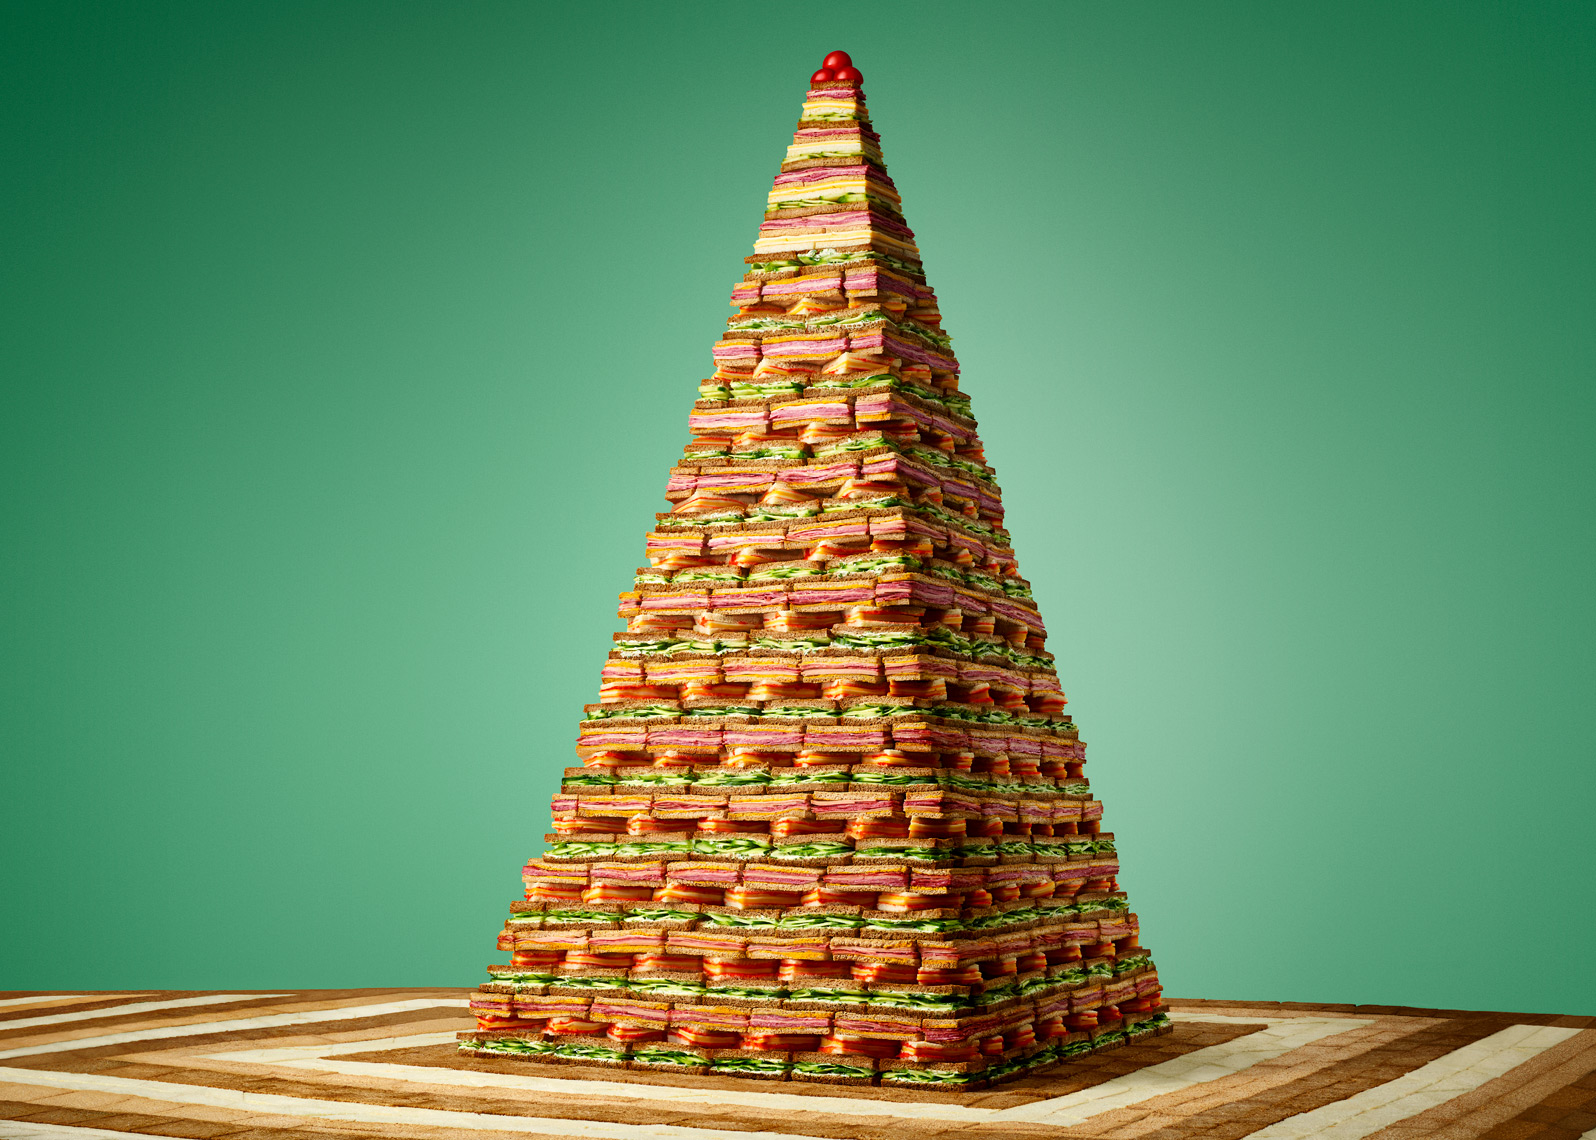 sandwich_pyramid_web